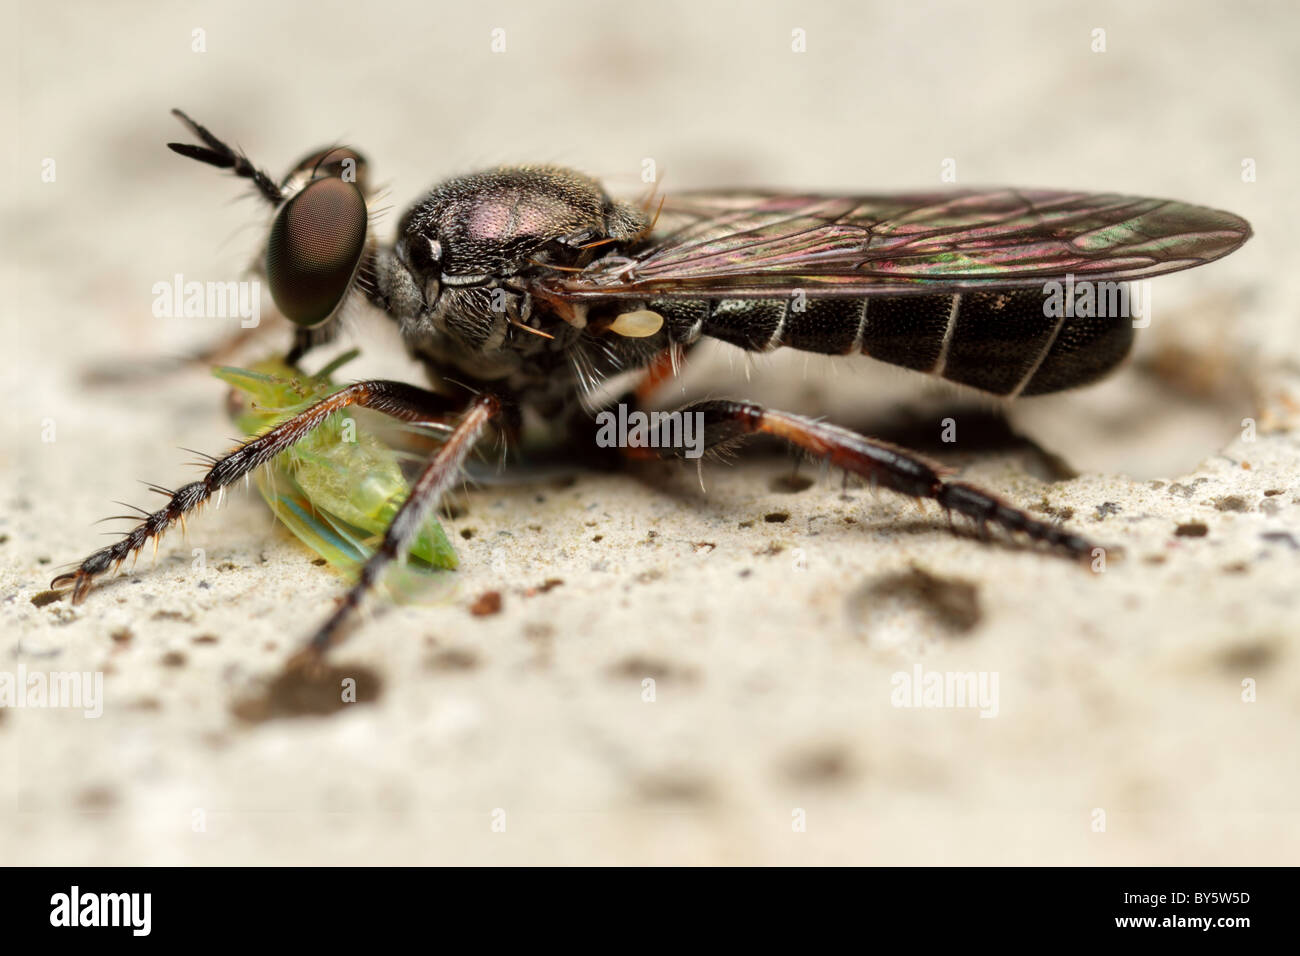 Robber Fly (Atomosia sp) at the time of eating a membracidae - Stock Image